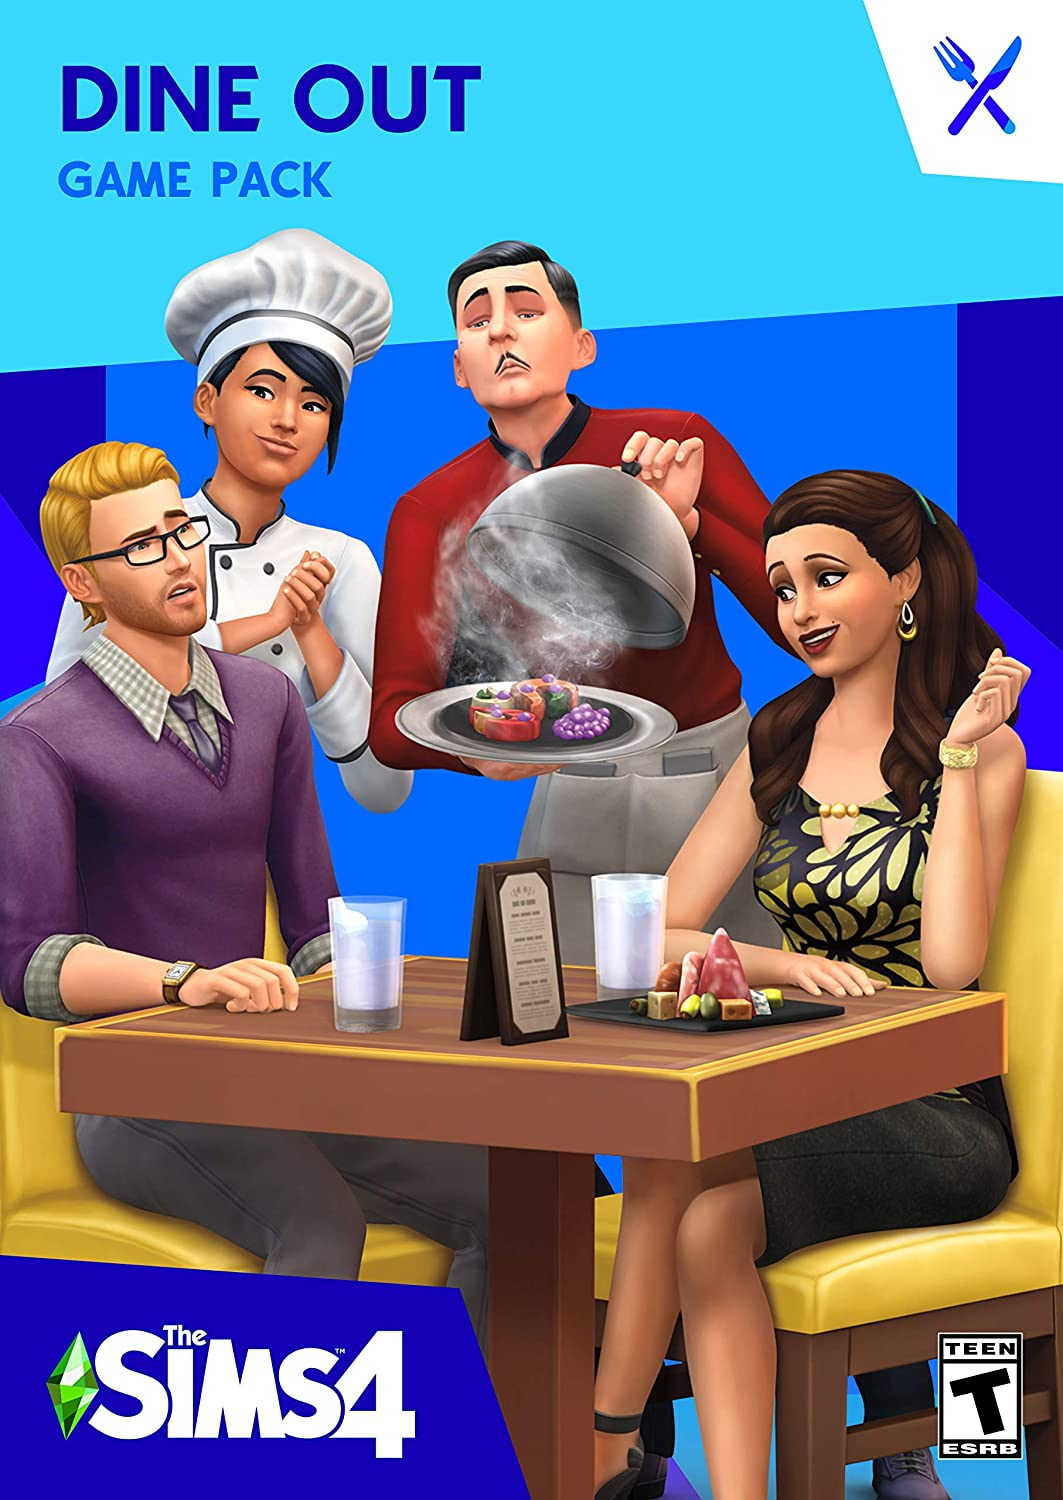 The Save money Sims 4 - Dine Spring new work Online Code Out Game